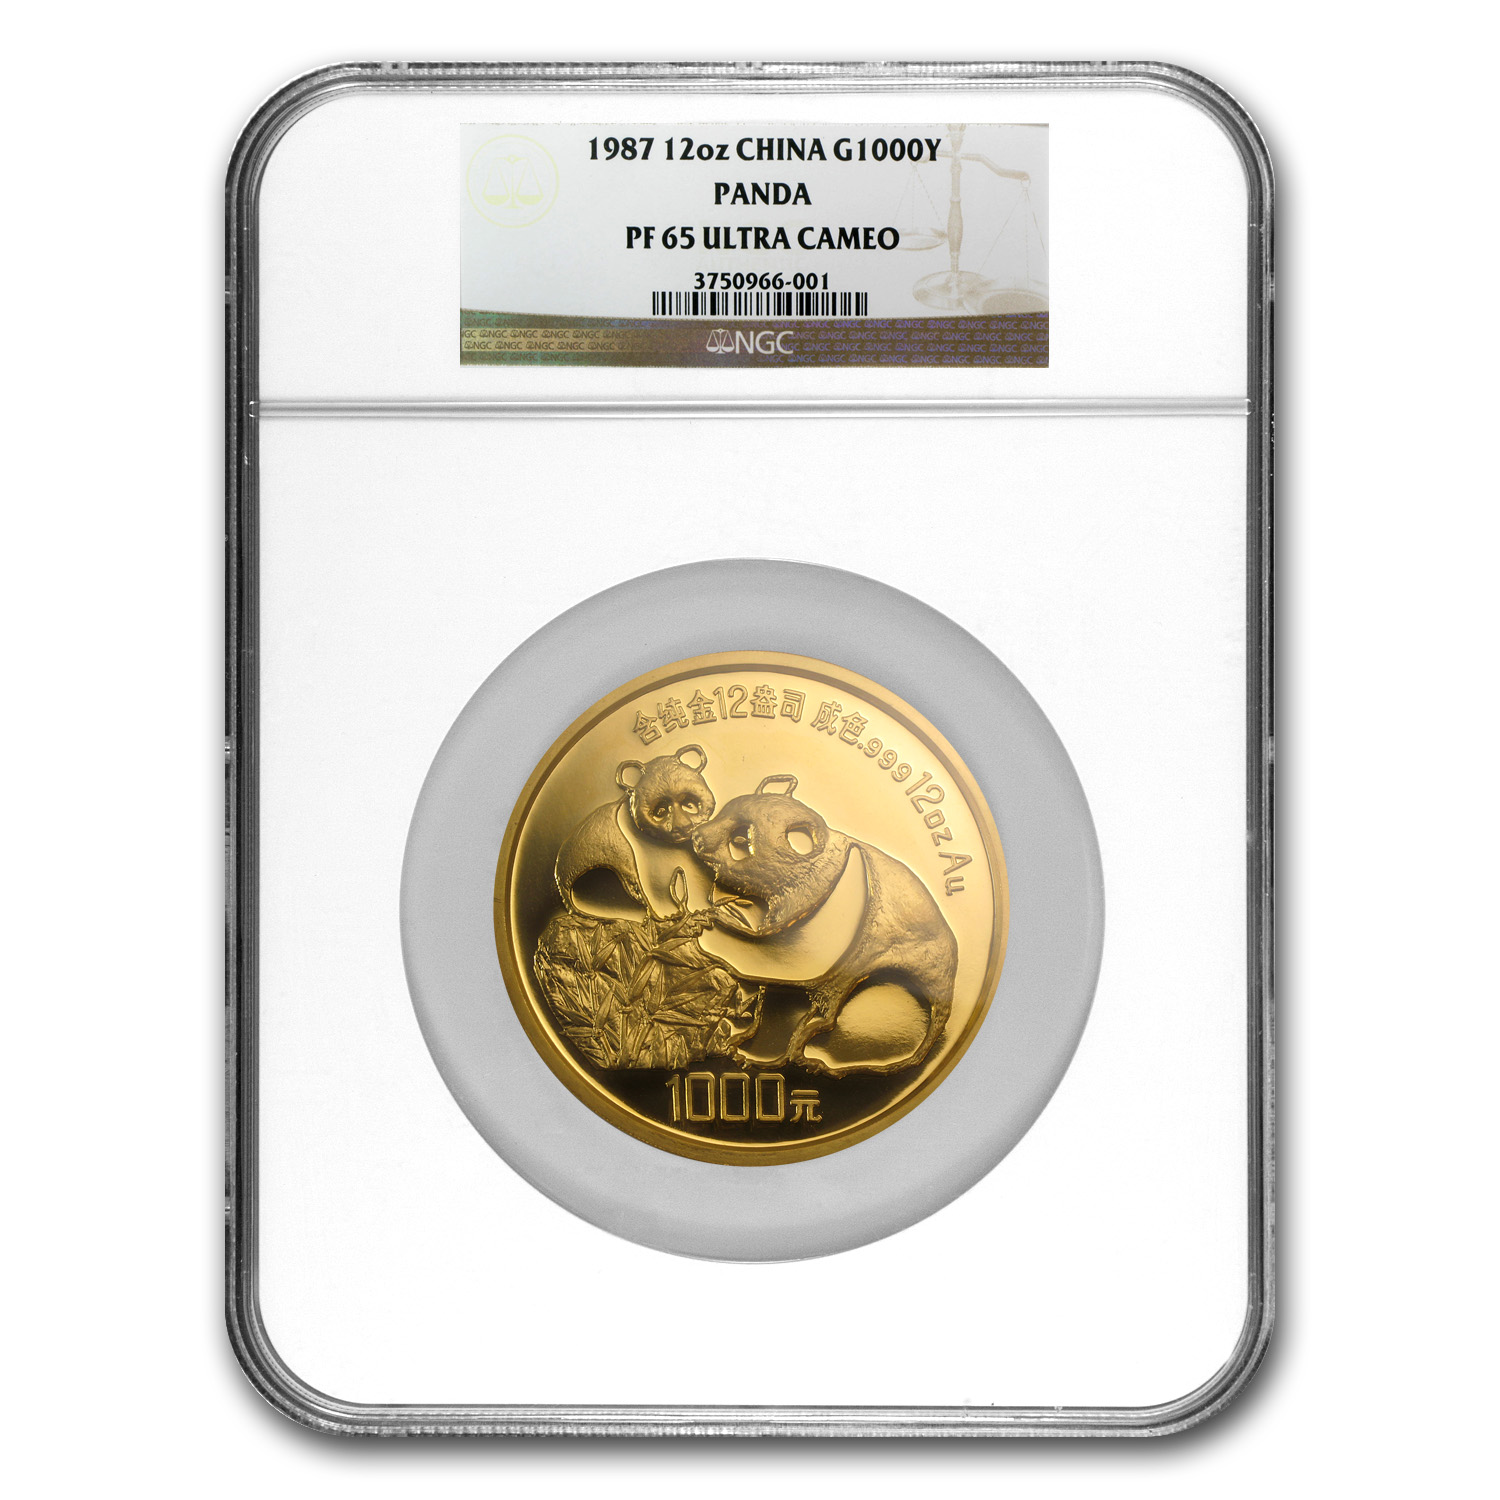 1987 12 oz Proof Gold Chinese Panda 1000 Yuan PF-65 NGC